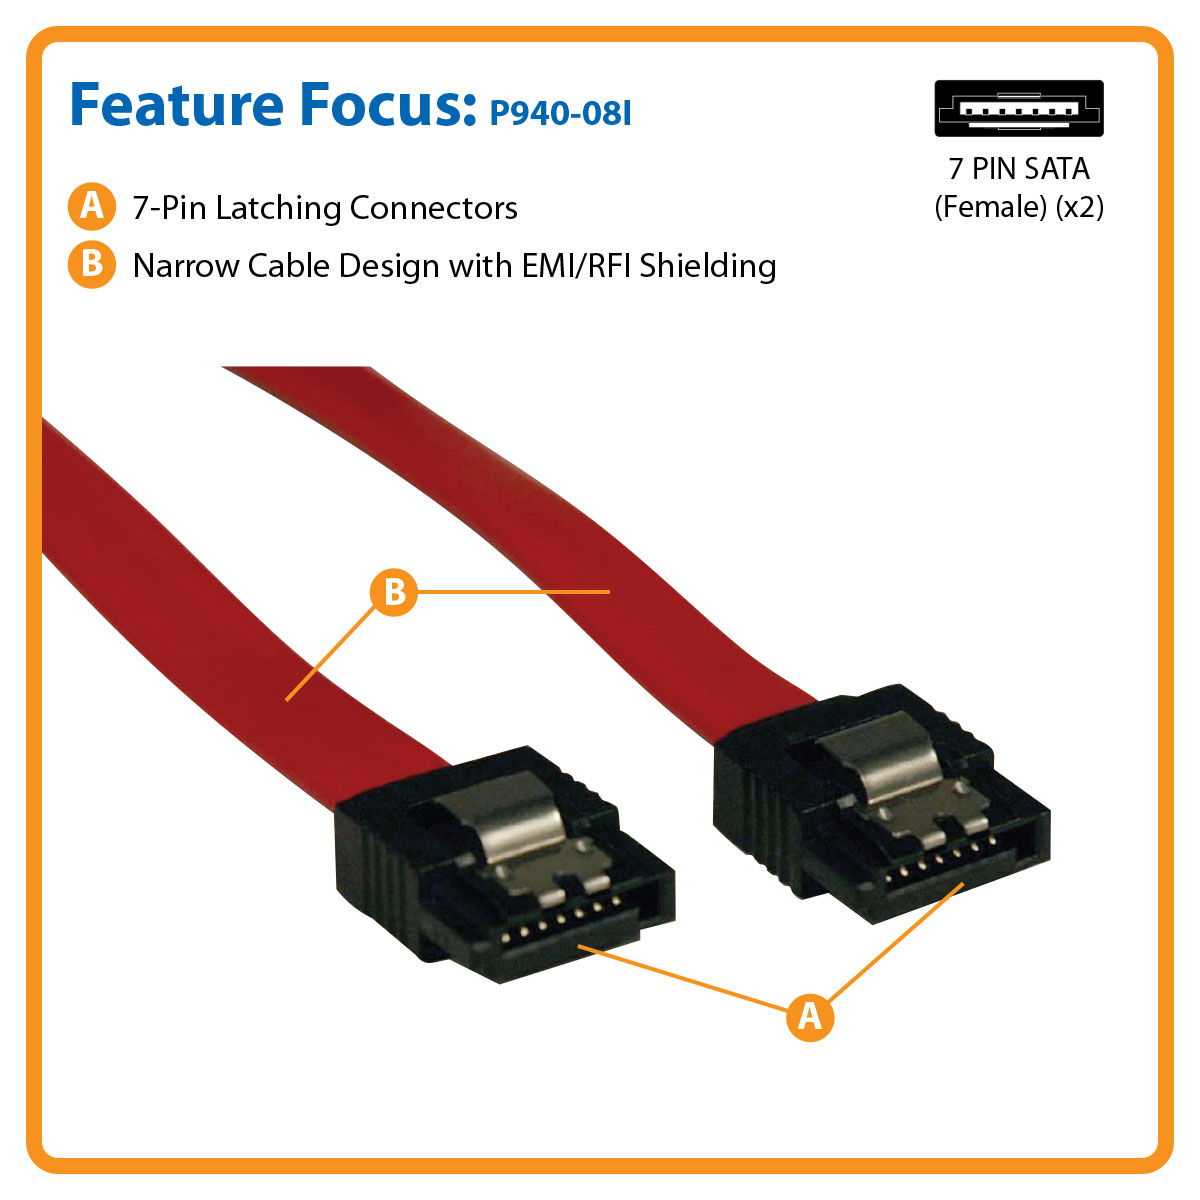 Tripp Lite 8 Inch Serial Ata Sata Signal Cable 7pin Male And Power Molex Adapter One Combo To Connect Securely A High Speed Device Controller